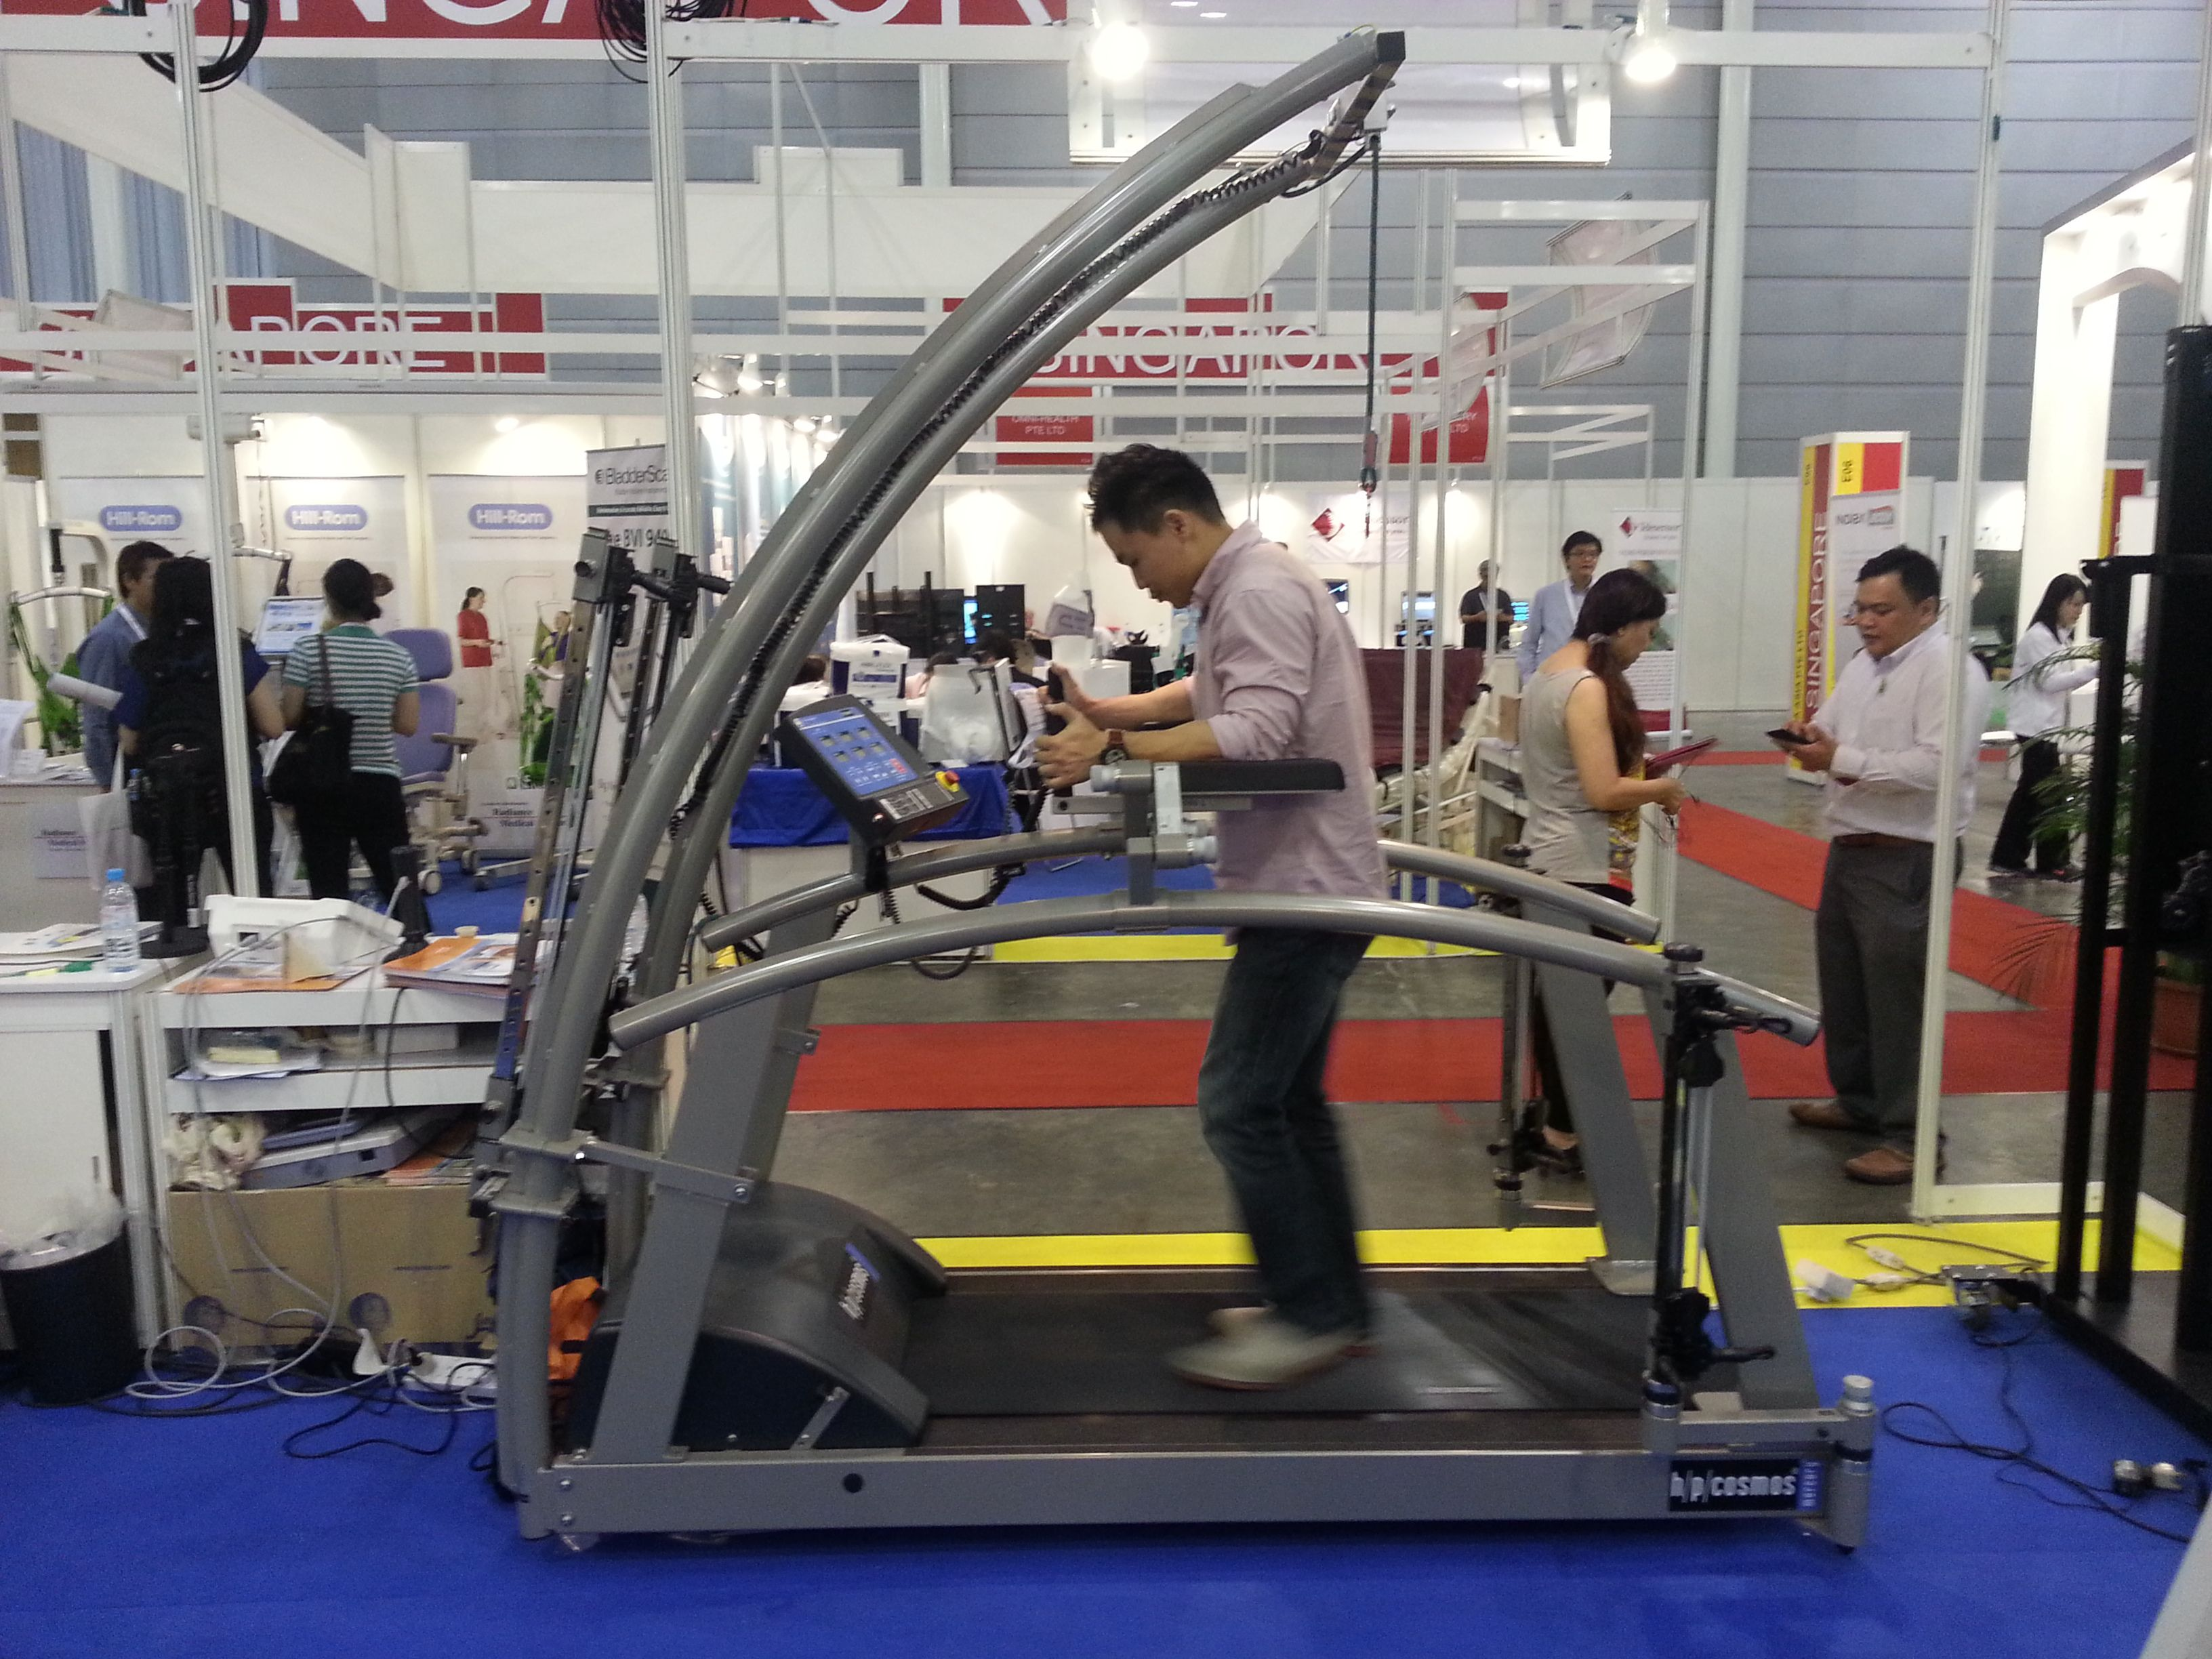 robowalk has been on display at Rehab Tech Asia exhibition in